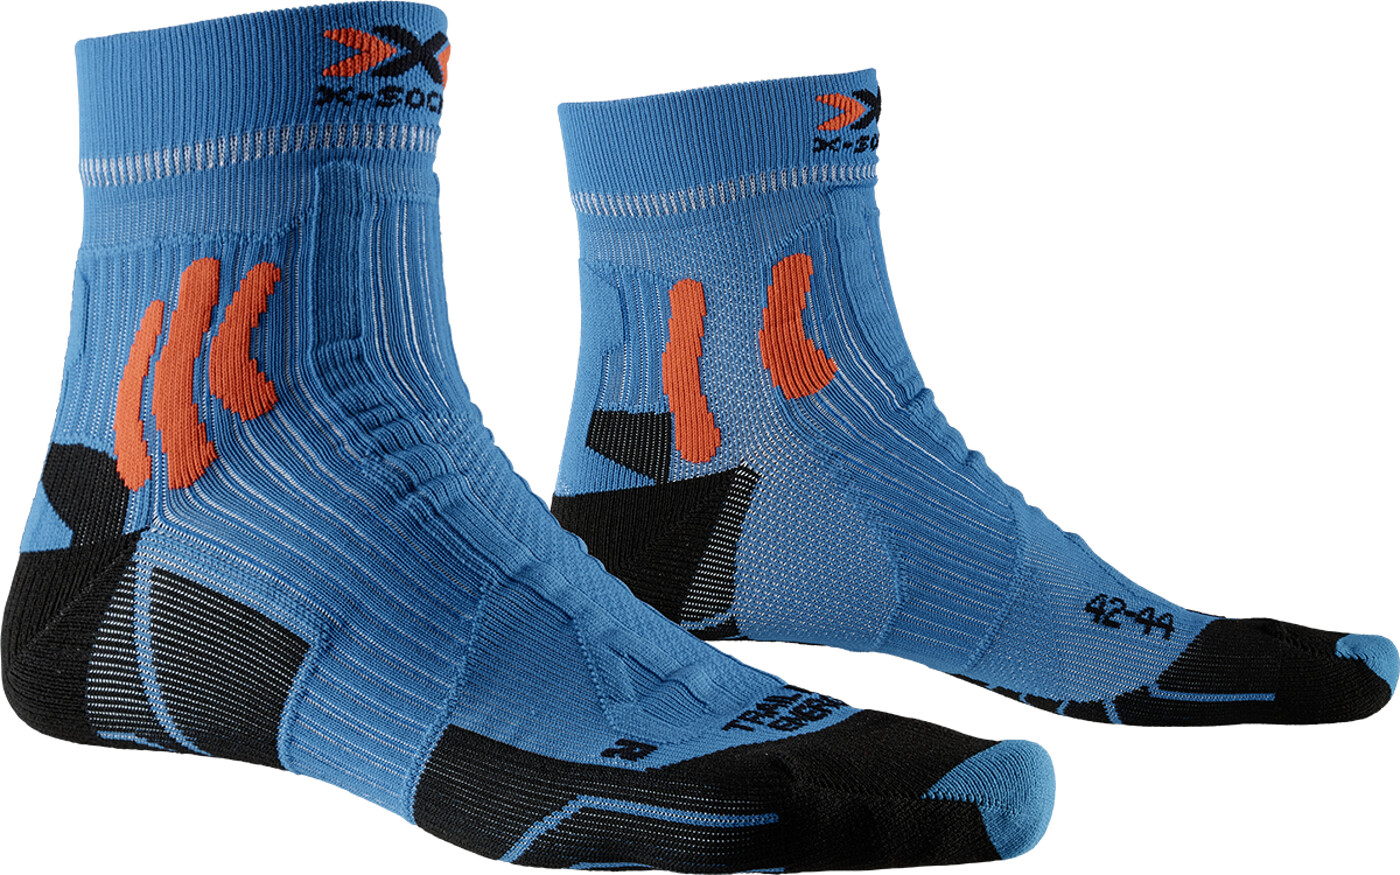 X-BIONIC X-SOCKS® TRAIL RUN ENERGY - Herren